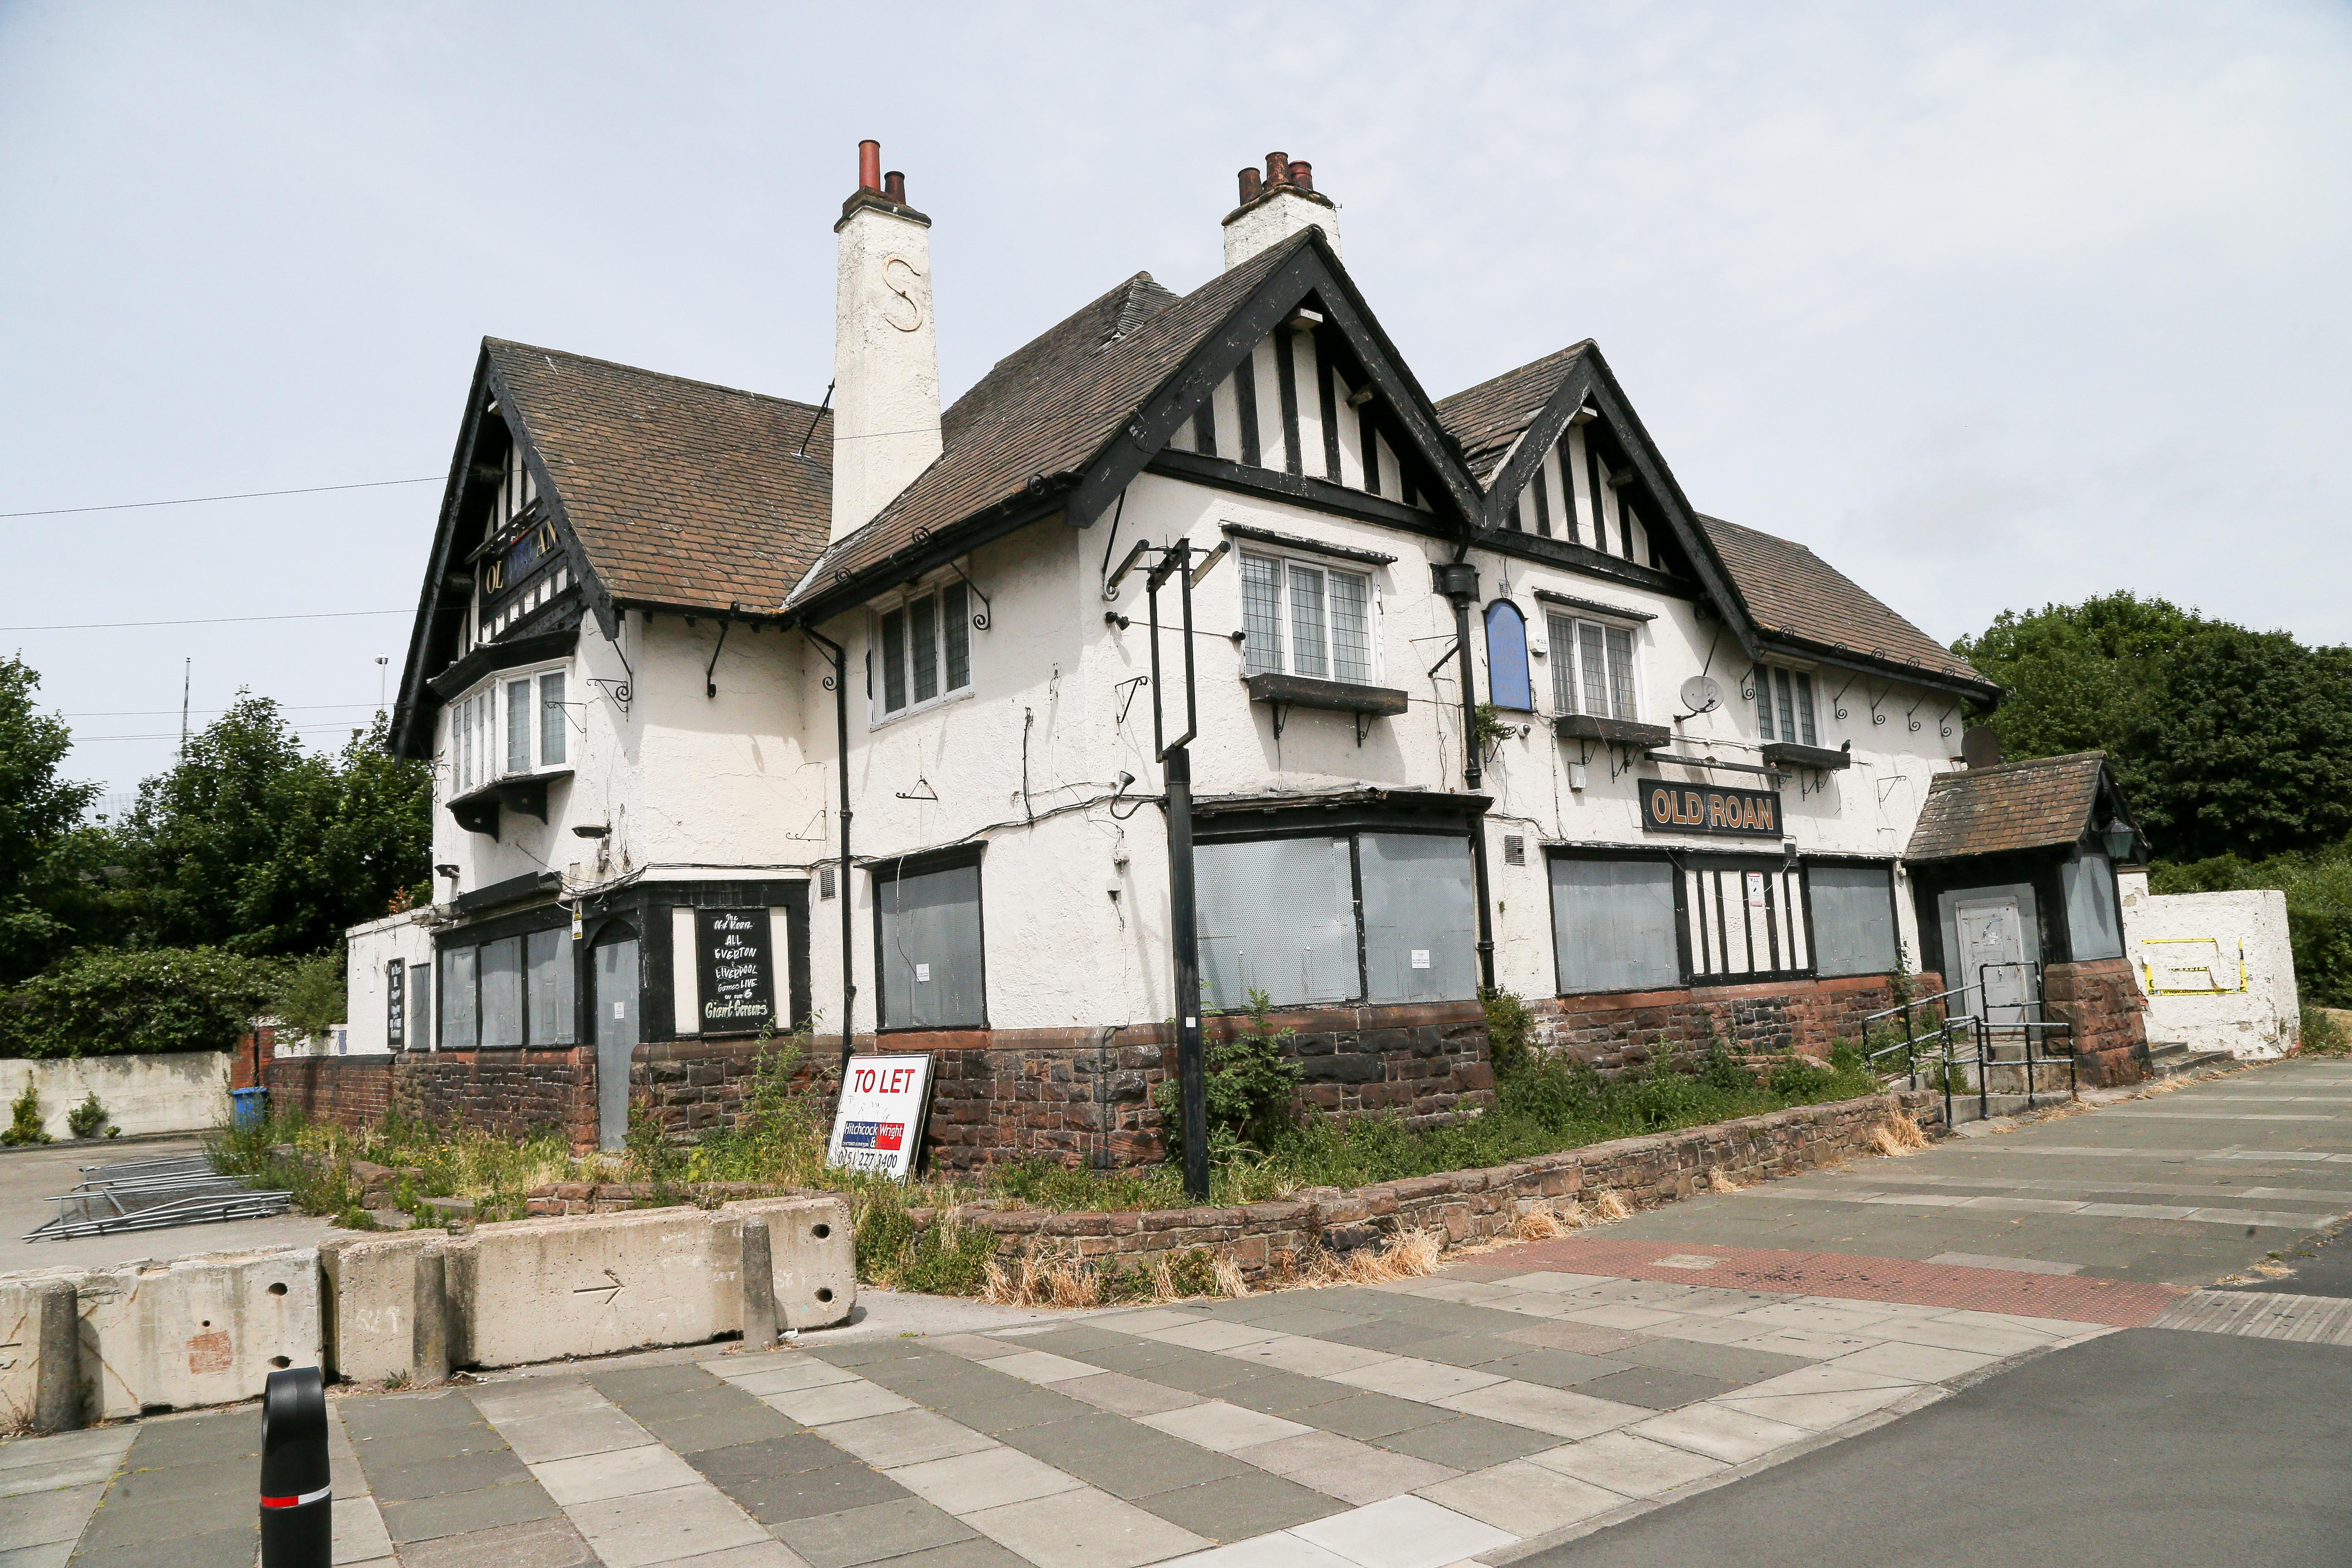 Turkish restaurant plan for Old Roan pub site collapses